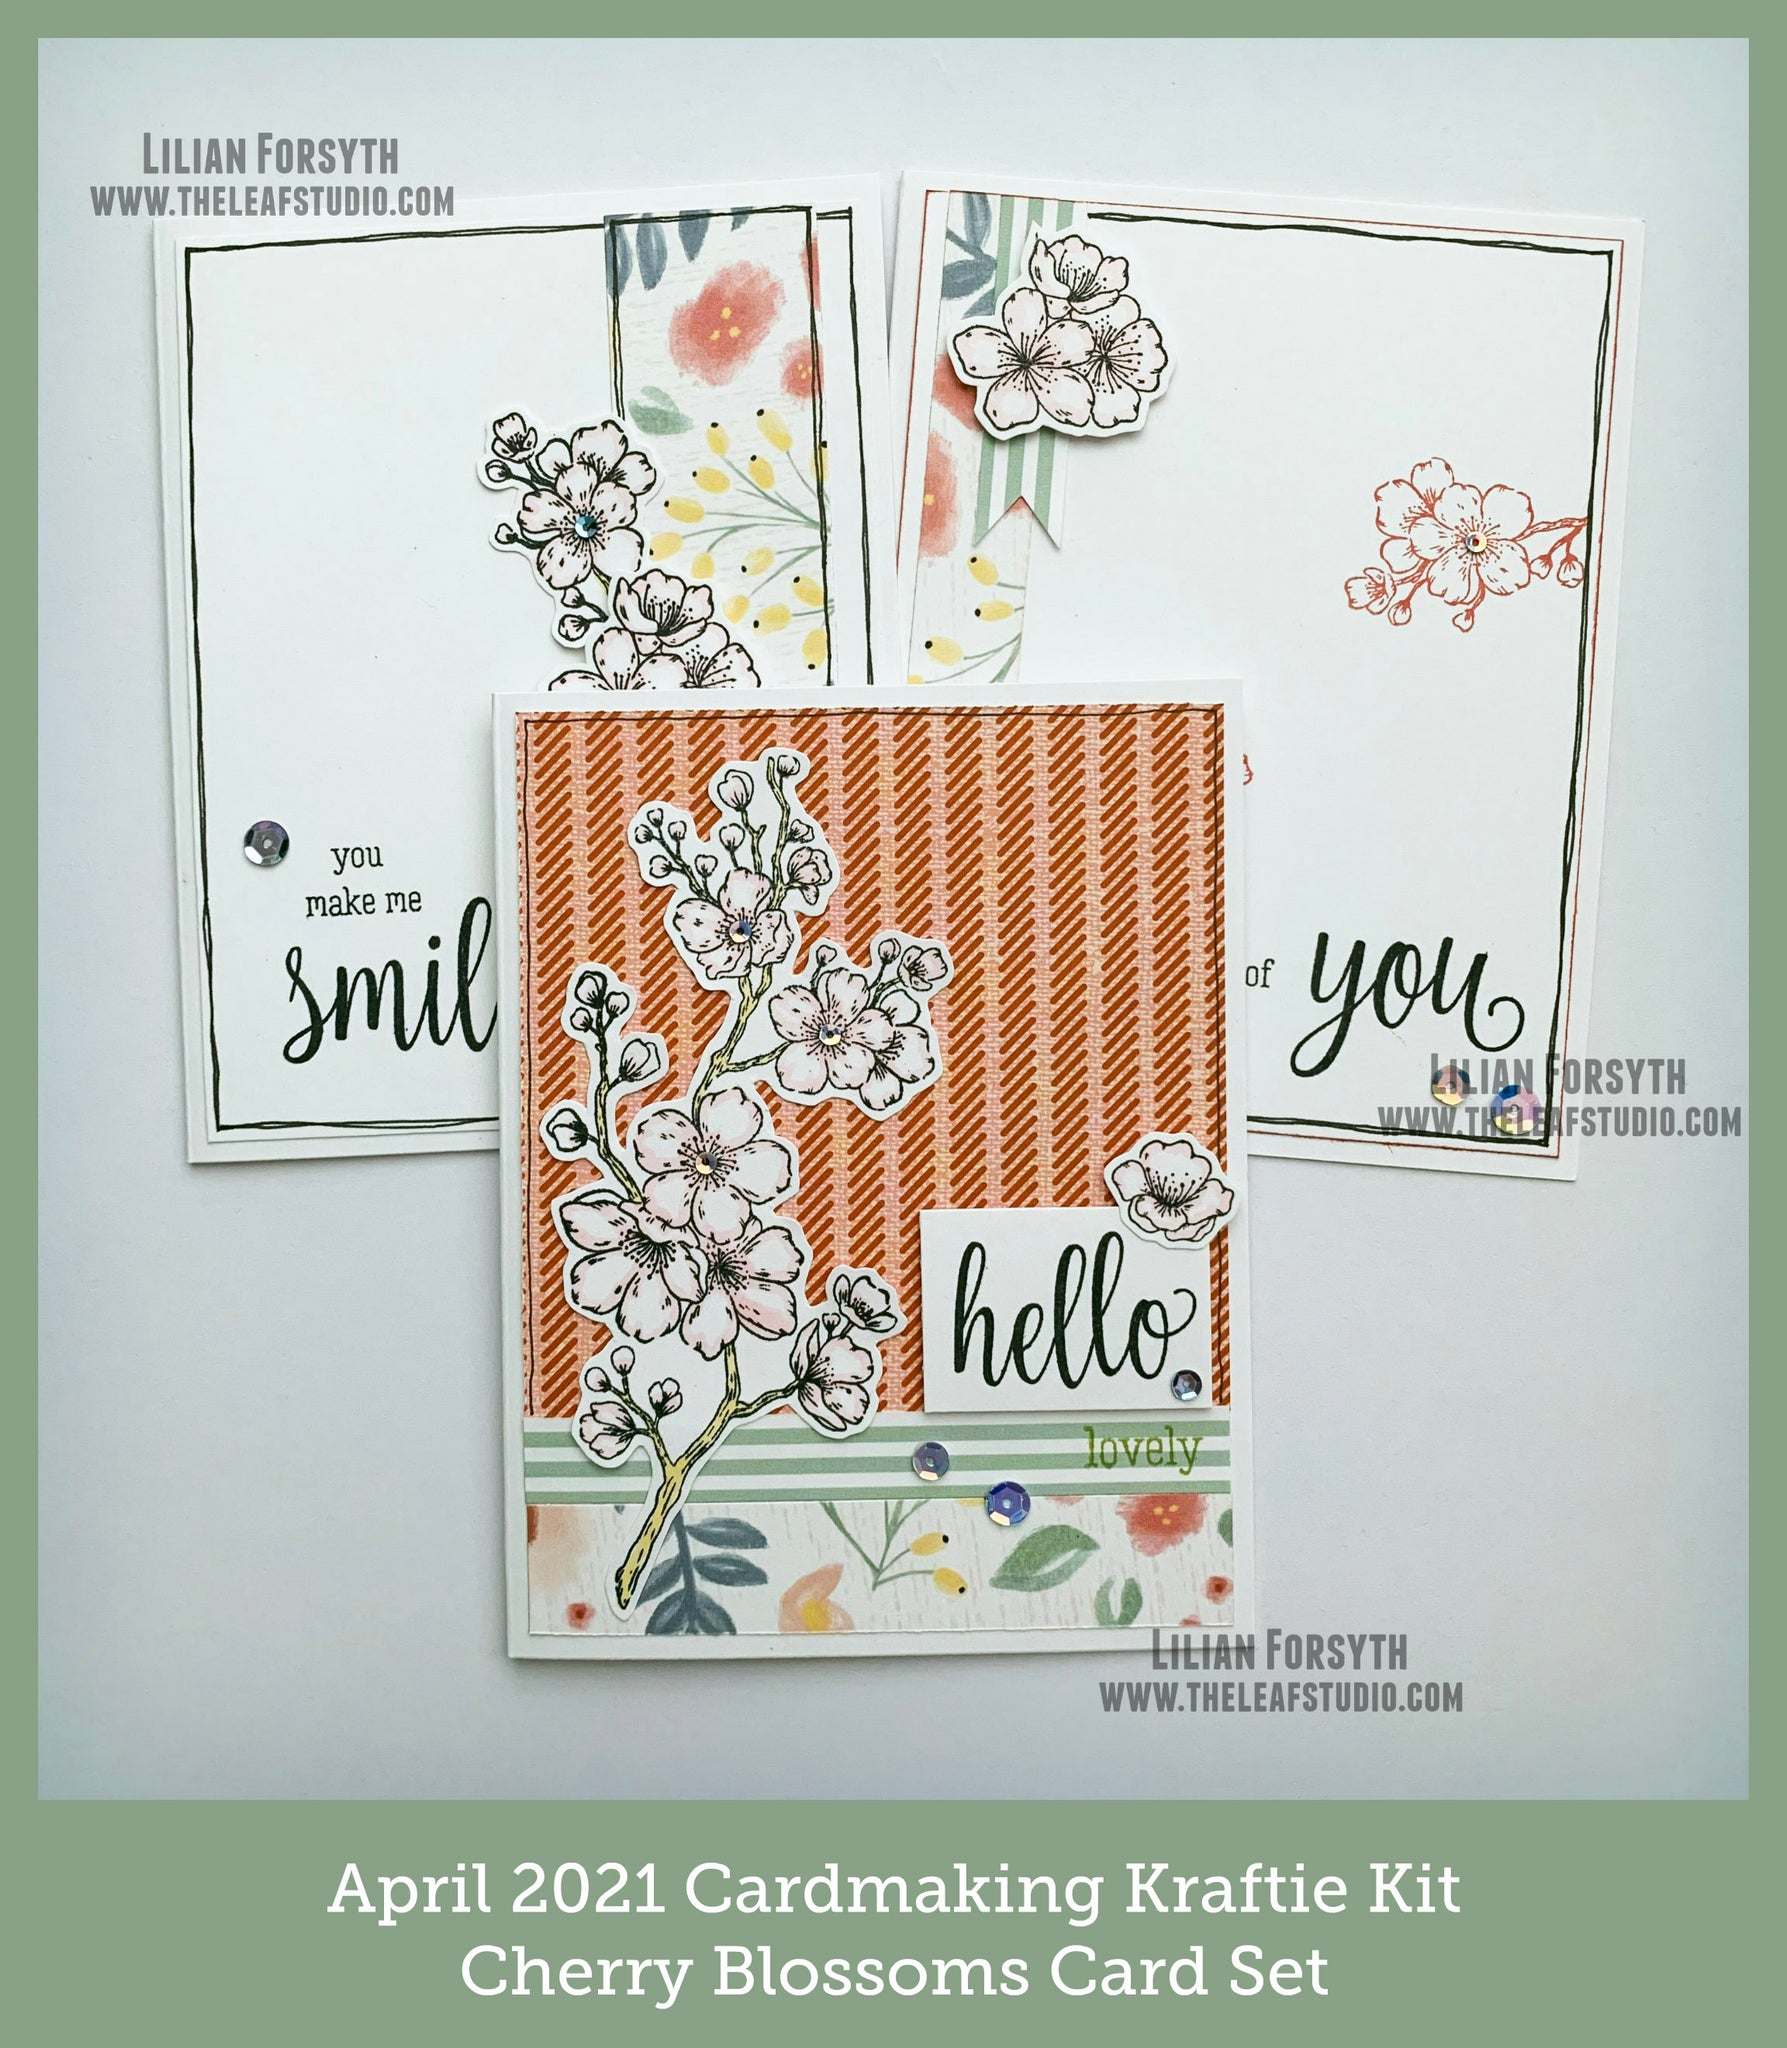 April 2021 Kraftie Kit - Cherry Blossoms Card Set - Local Pick-Up or Shipped